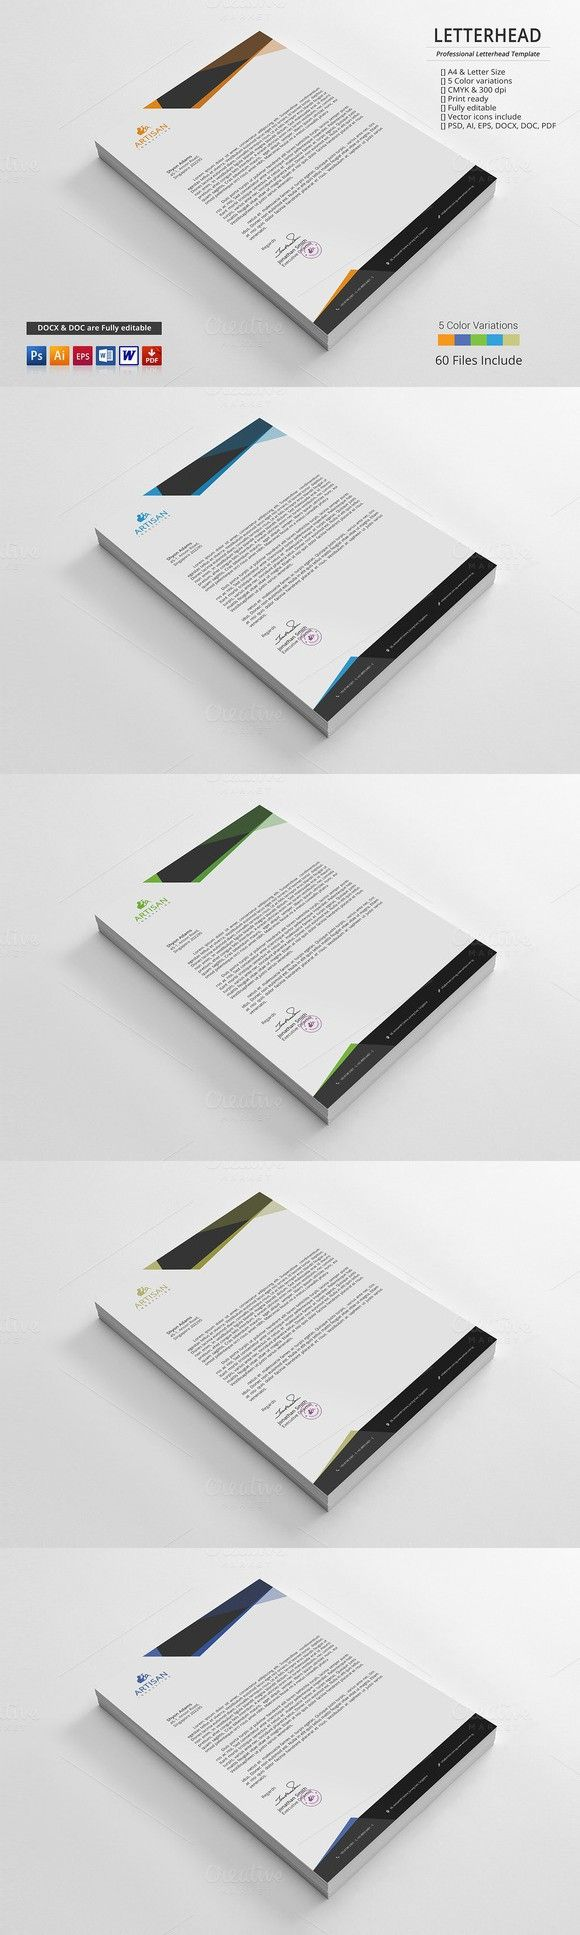 Letterhead. Stationery Templates